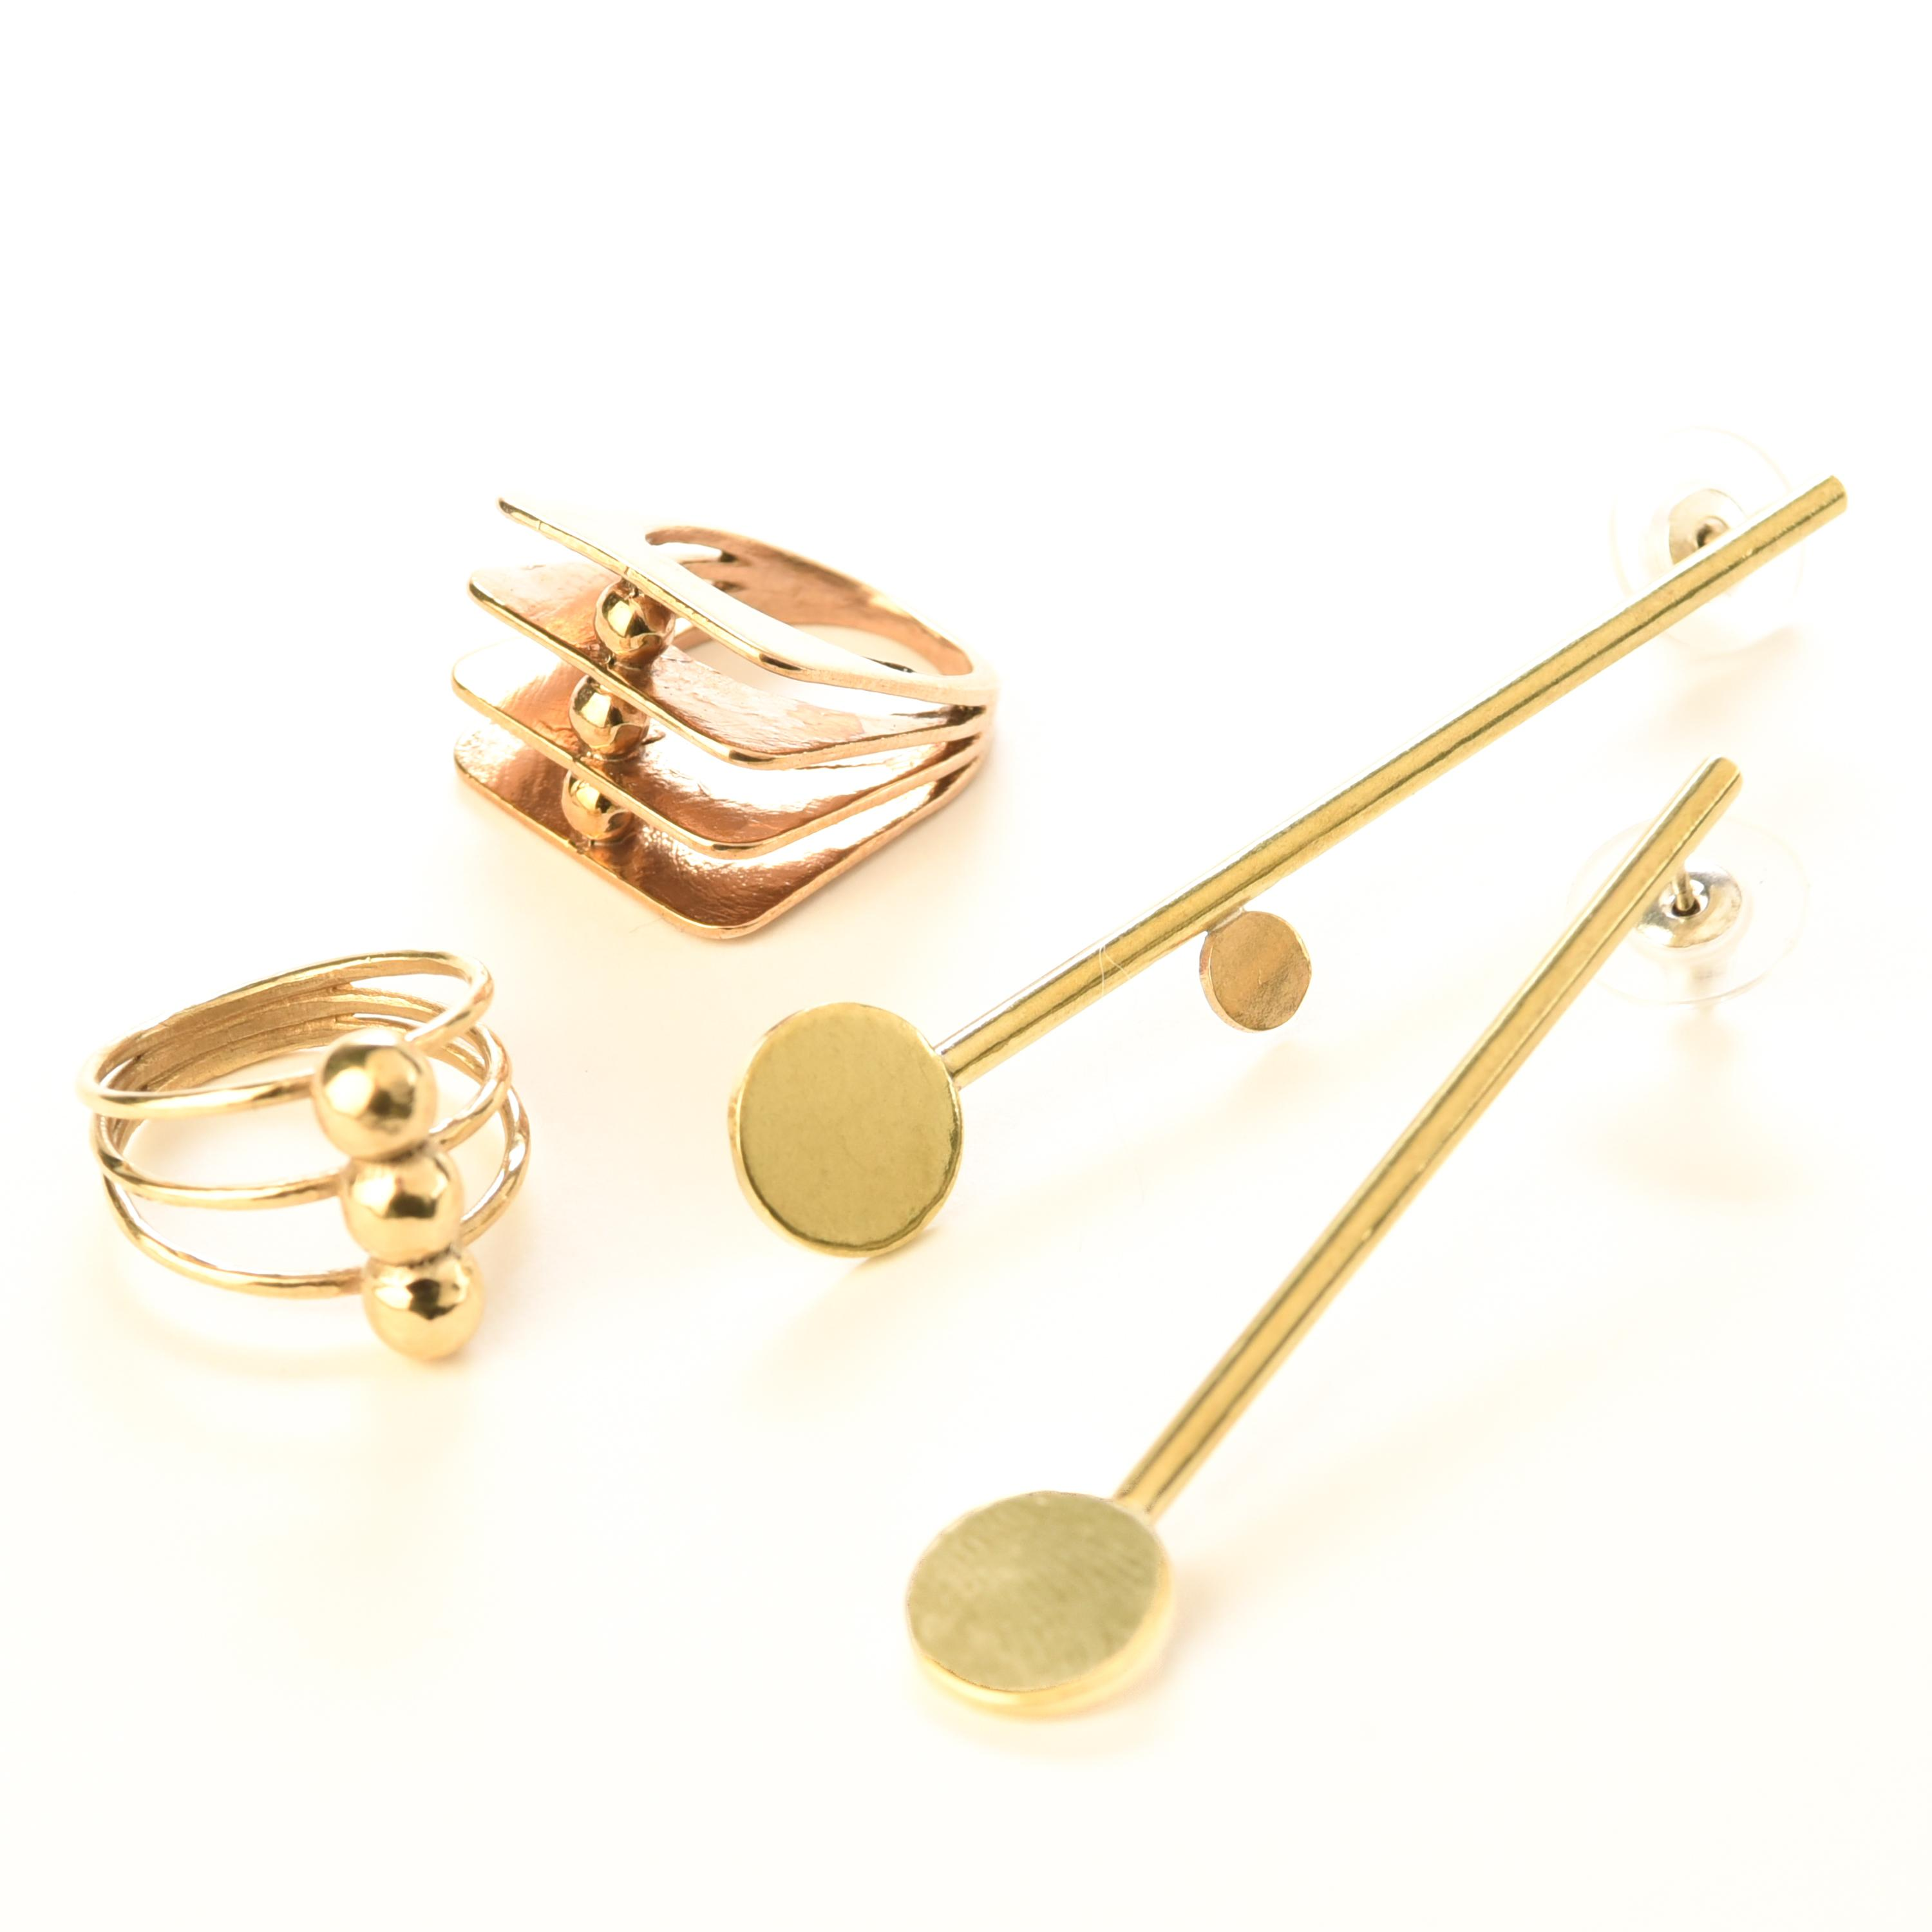 Two unique rings and a pair of earrings share a motif of gold circles and lines.